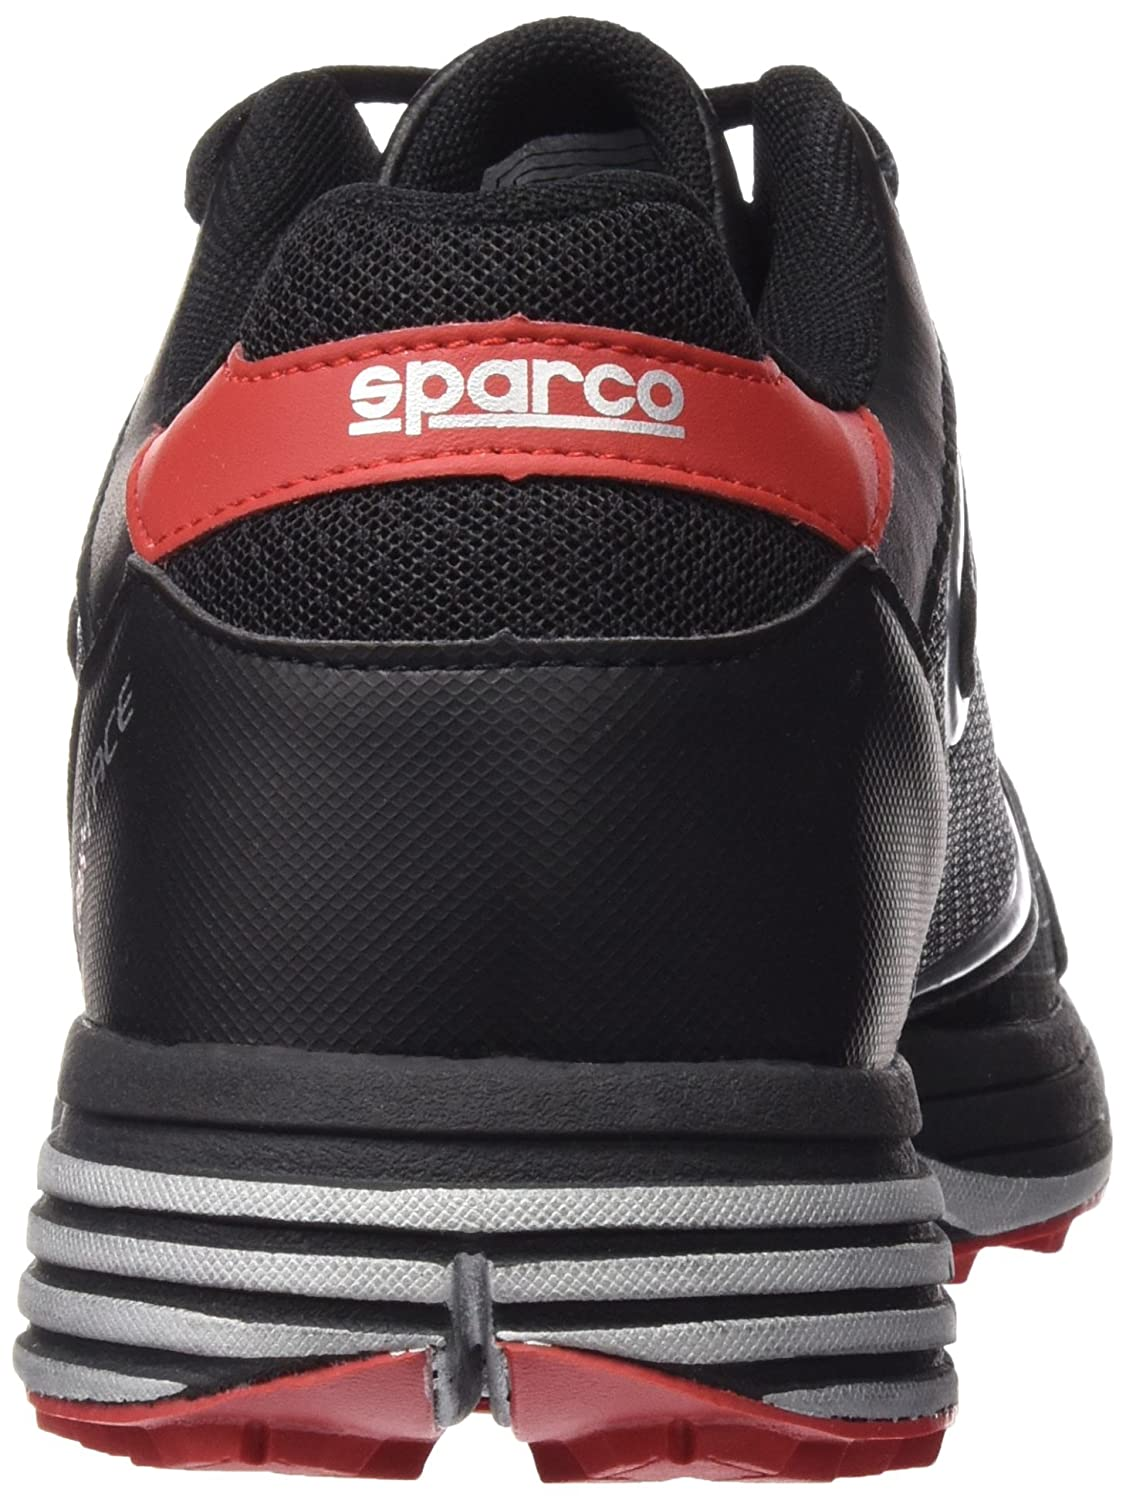 Sparco 00121646NR Shoes